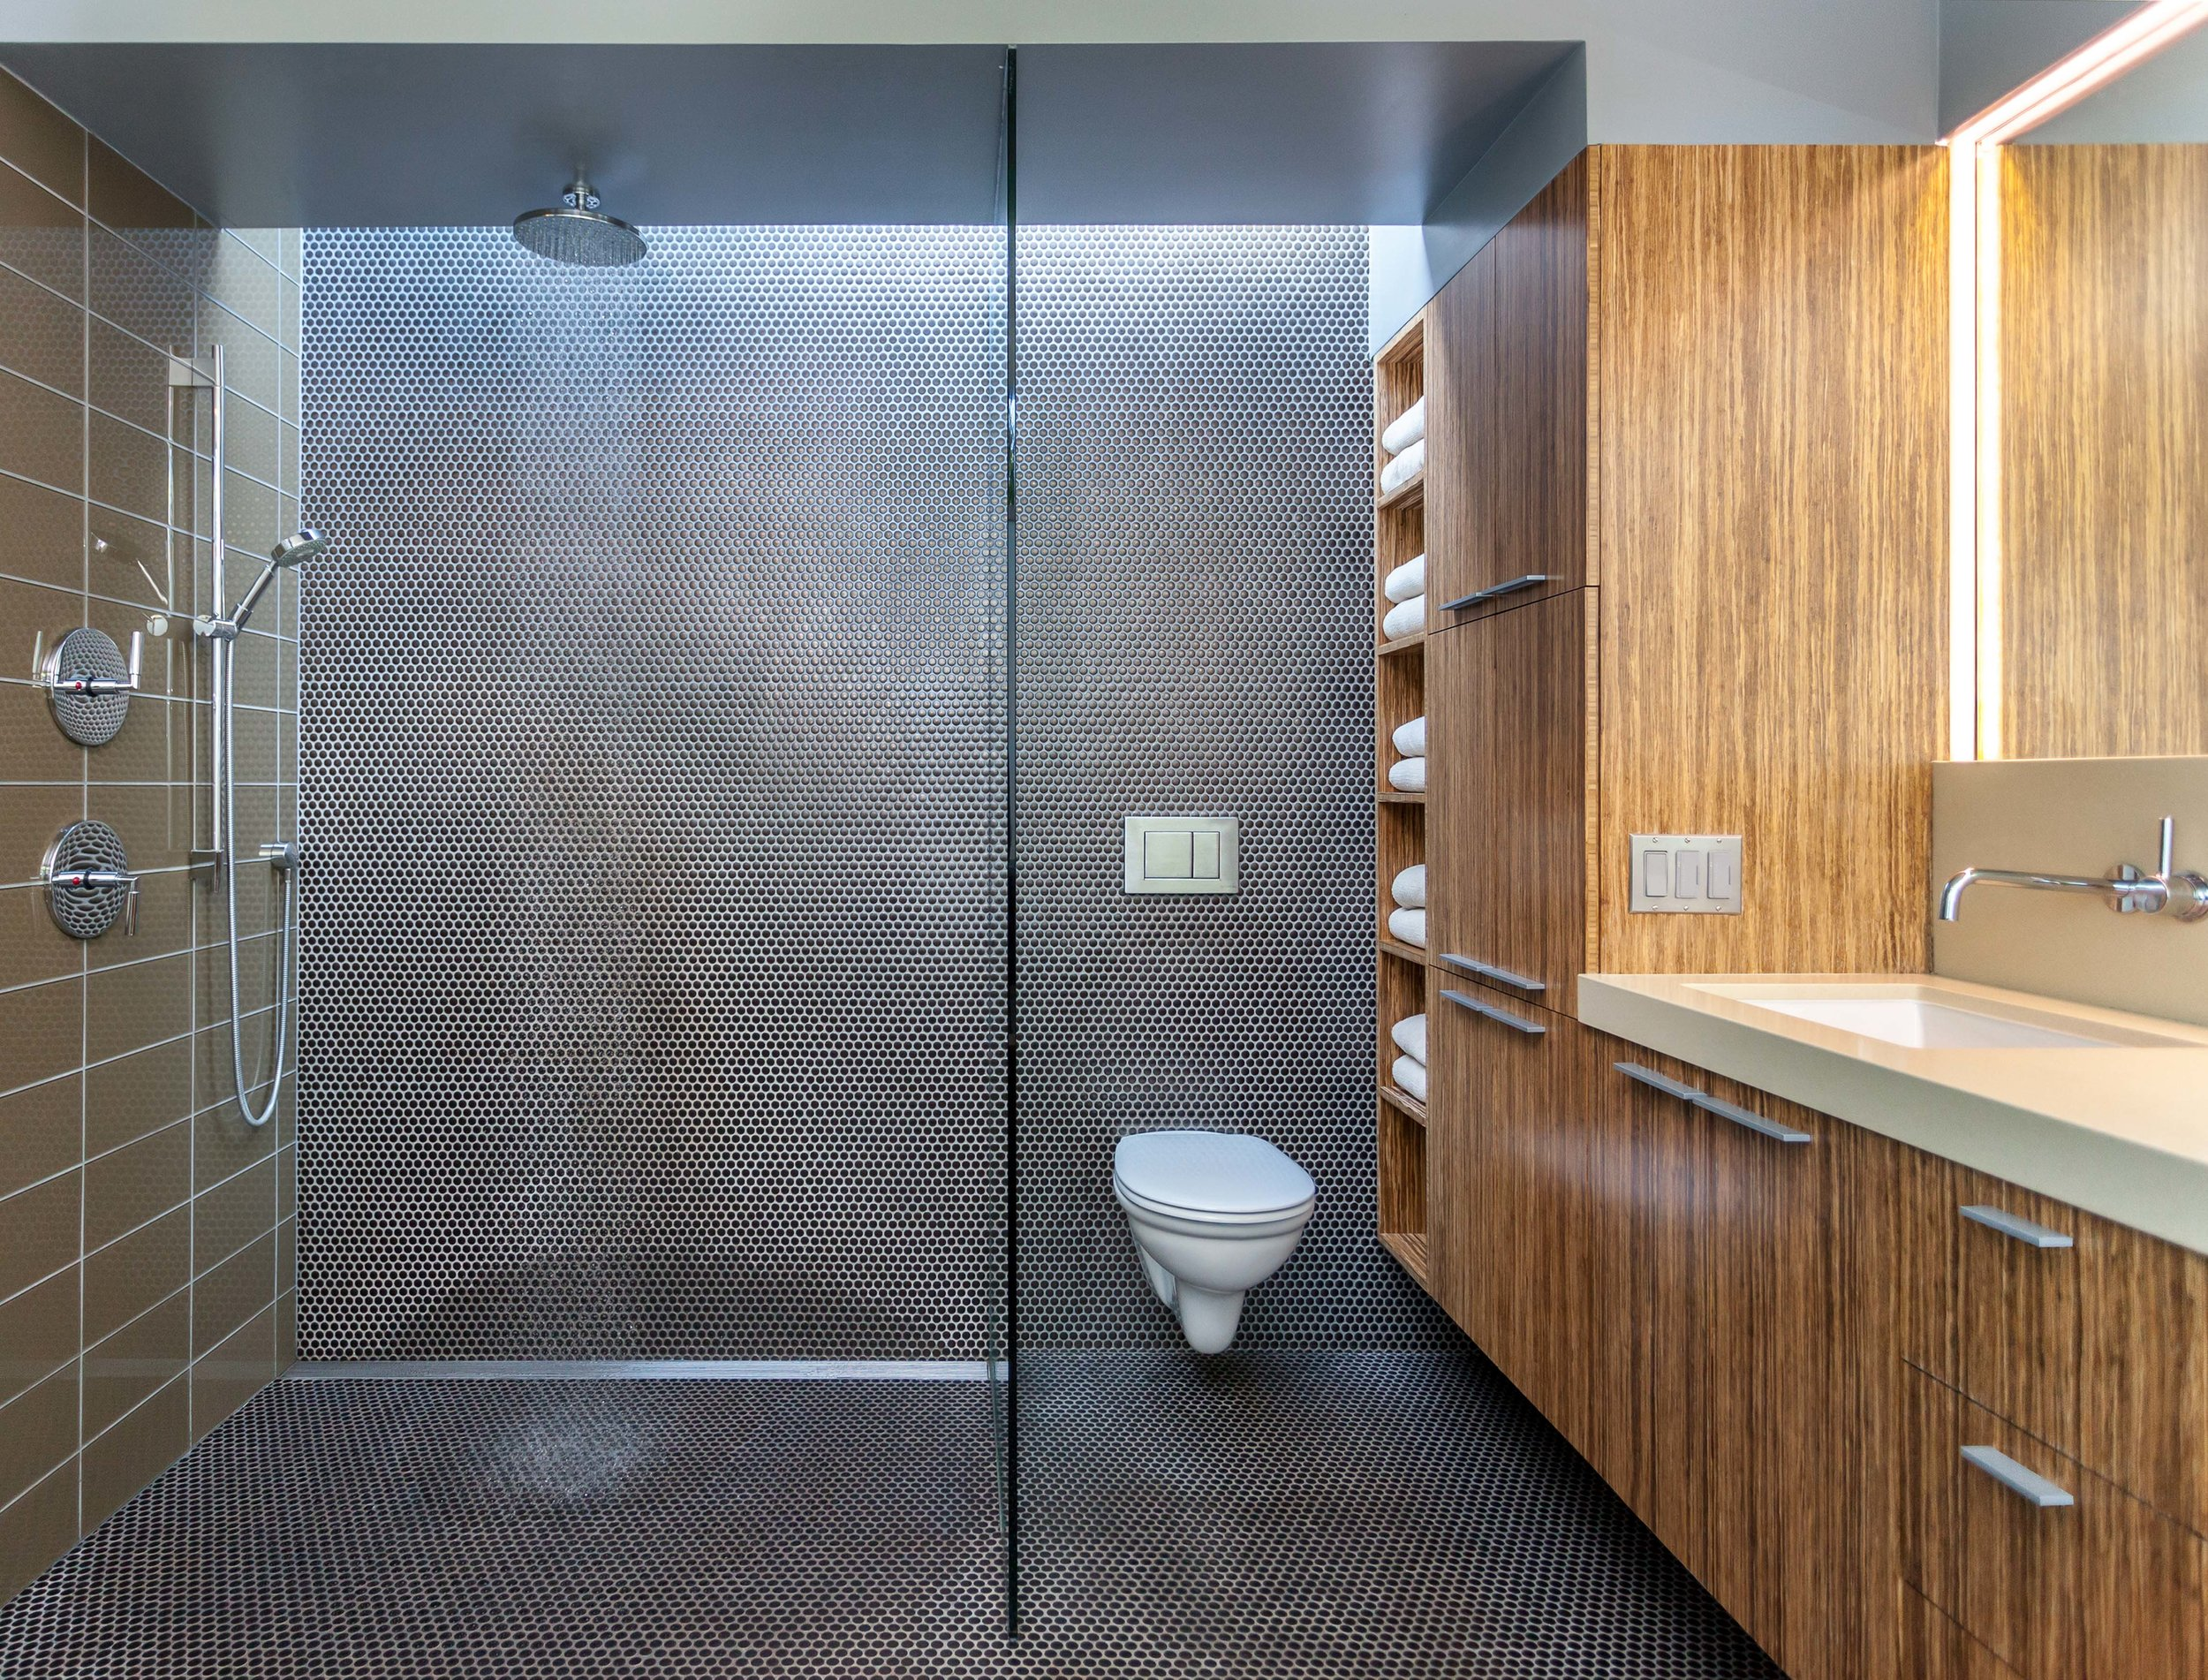 Open shower room with glass divider. The cabinet hovers over the floor and the recessed LED lights the mirror.